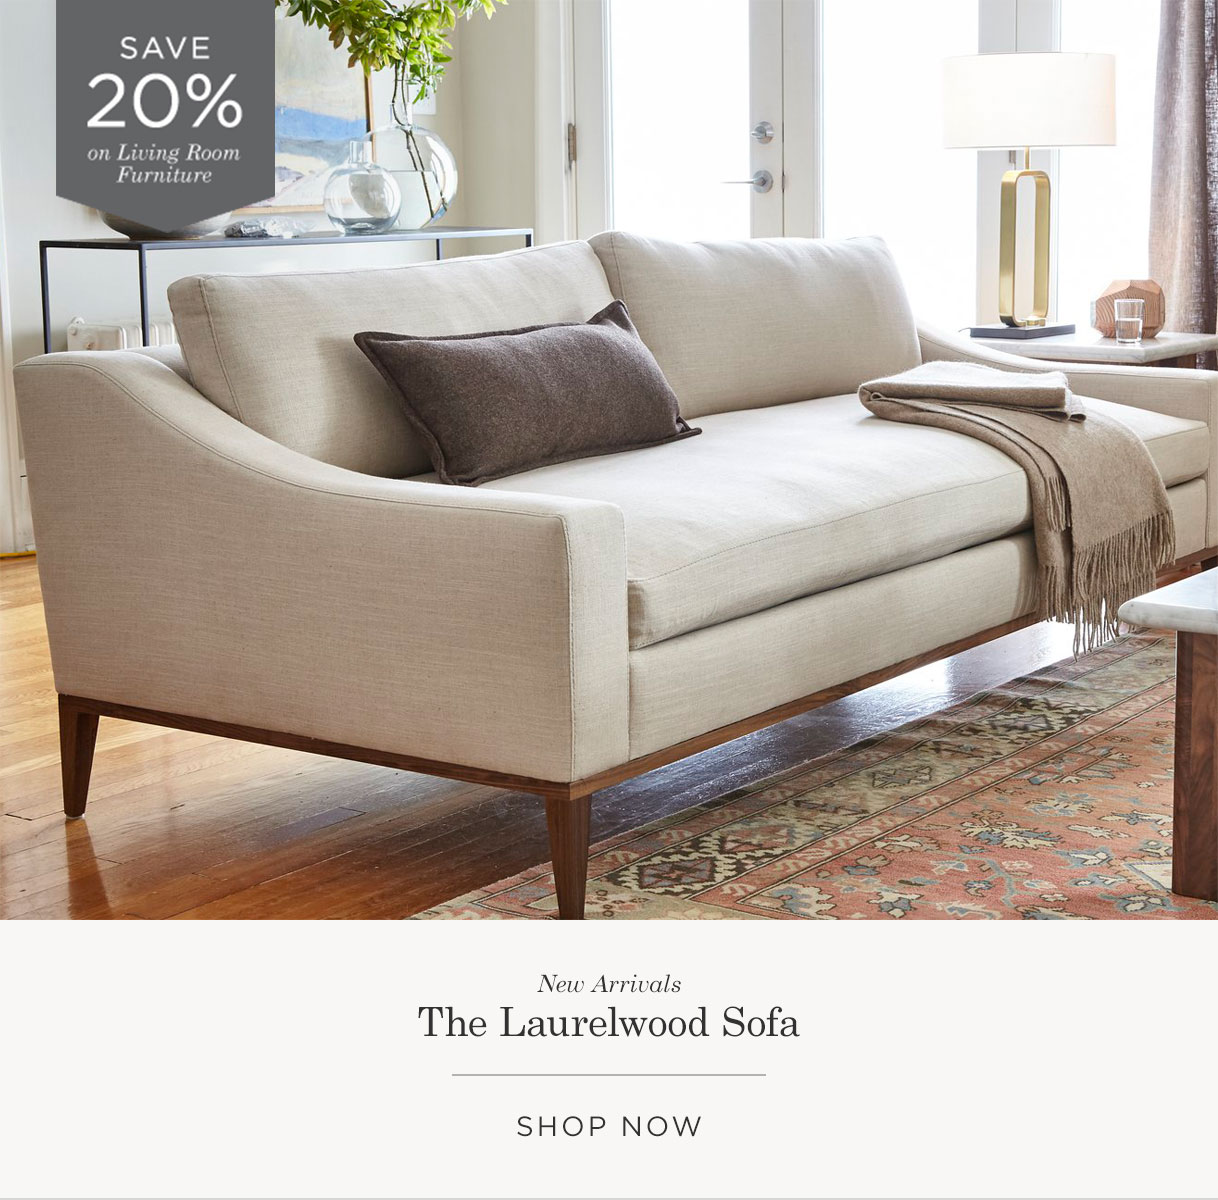 American Laurelwood Furniture: Classic American Lighting And House Parts